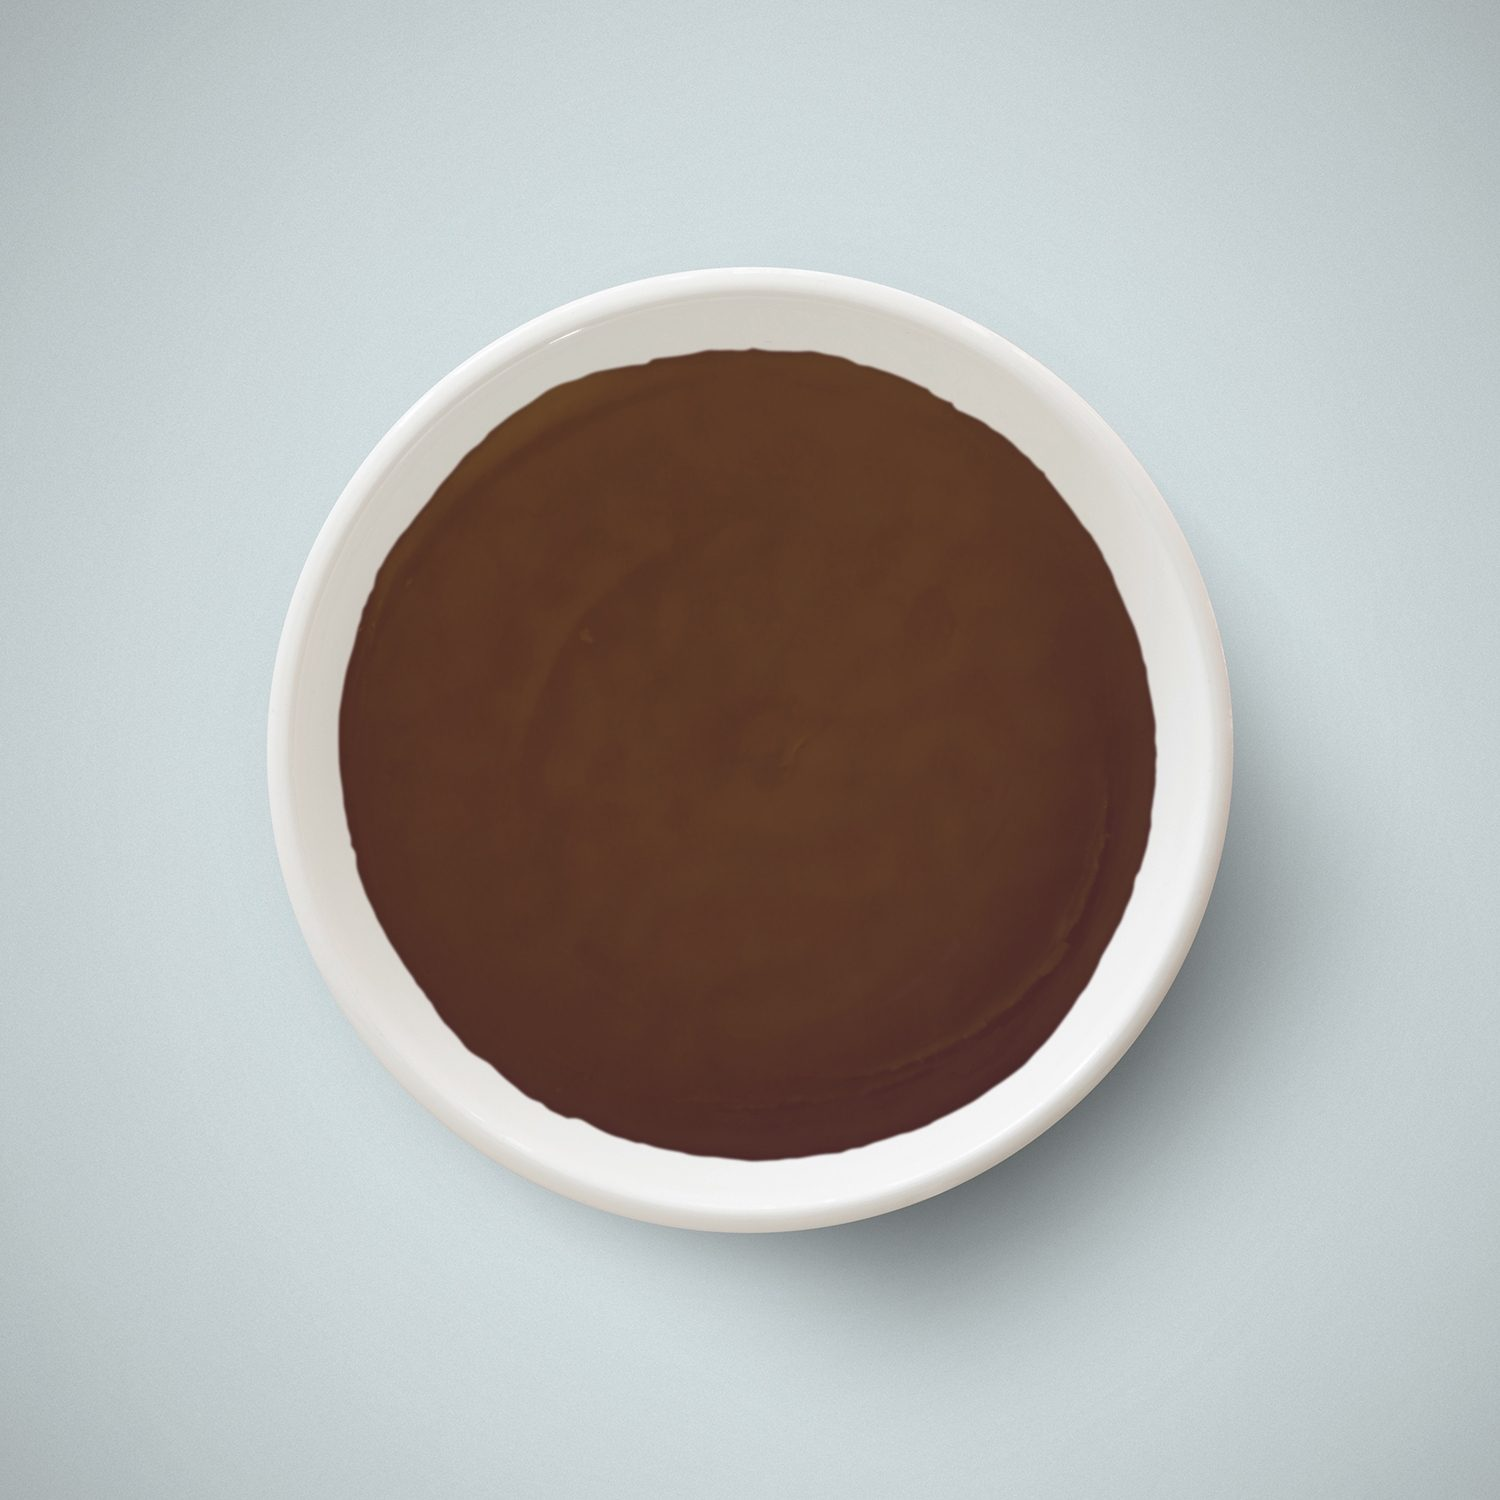 A small bowl that contains a dark brown grease called lanolin from H Foster.